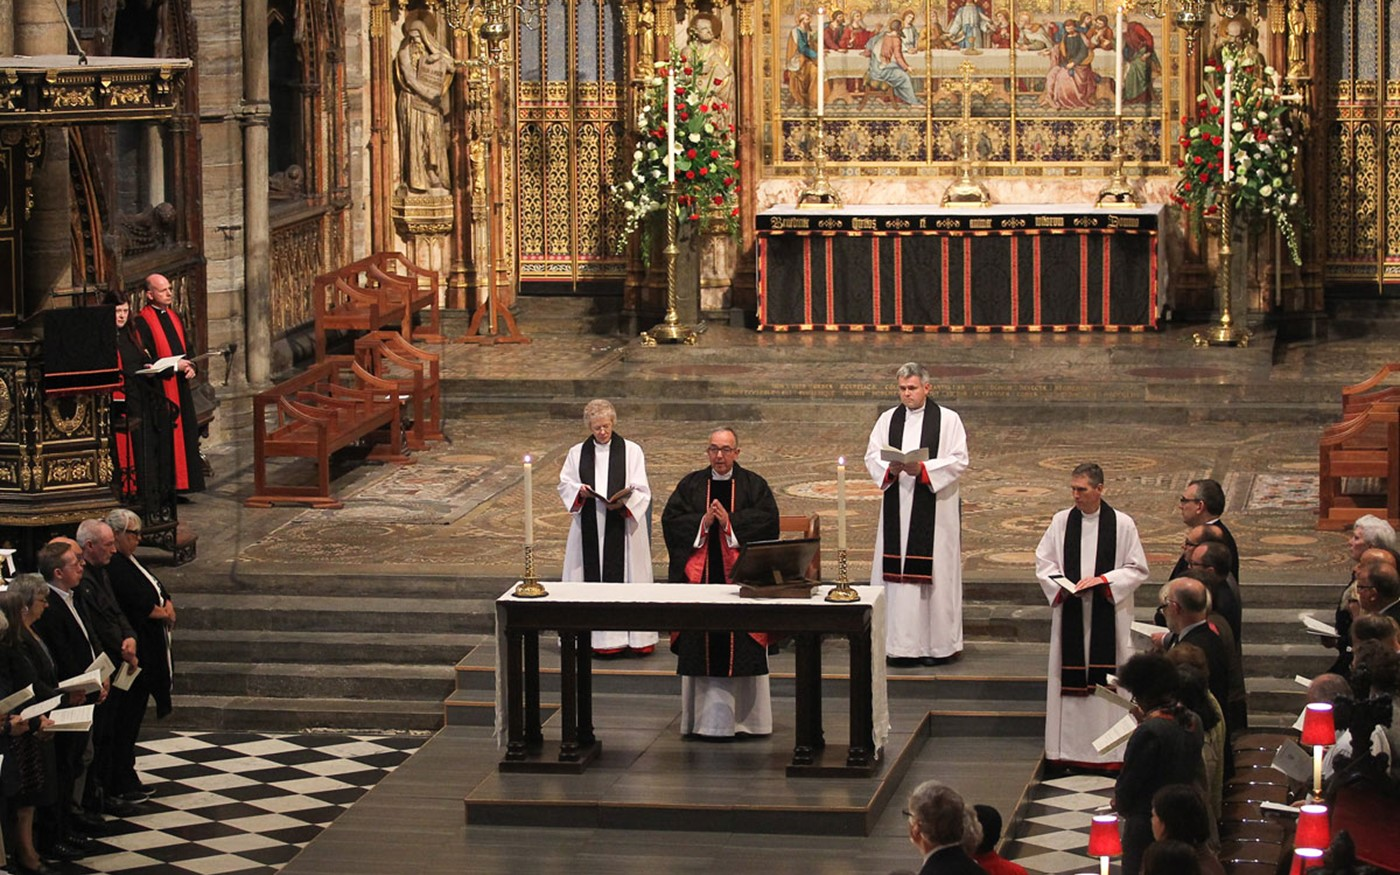 A Requiem was celebrated by the Dean of Westminster, the Very Reverend Dr John Hall, at the Abbey's Lantern Altar